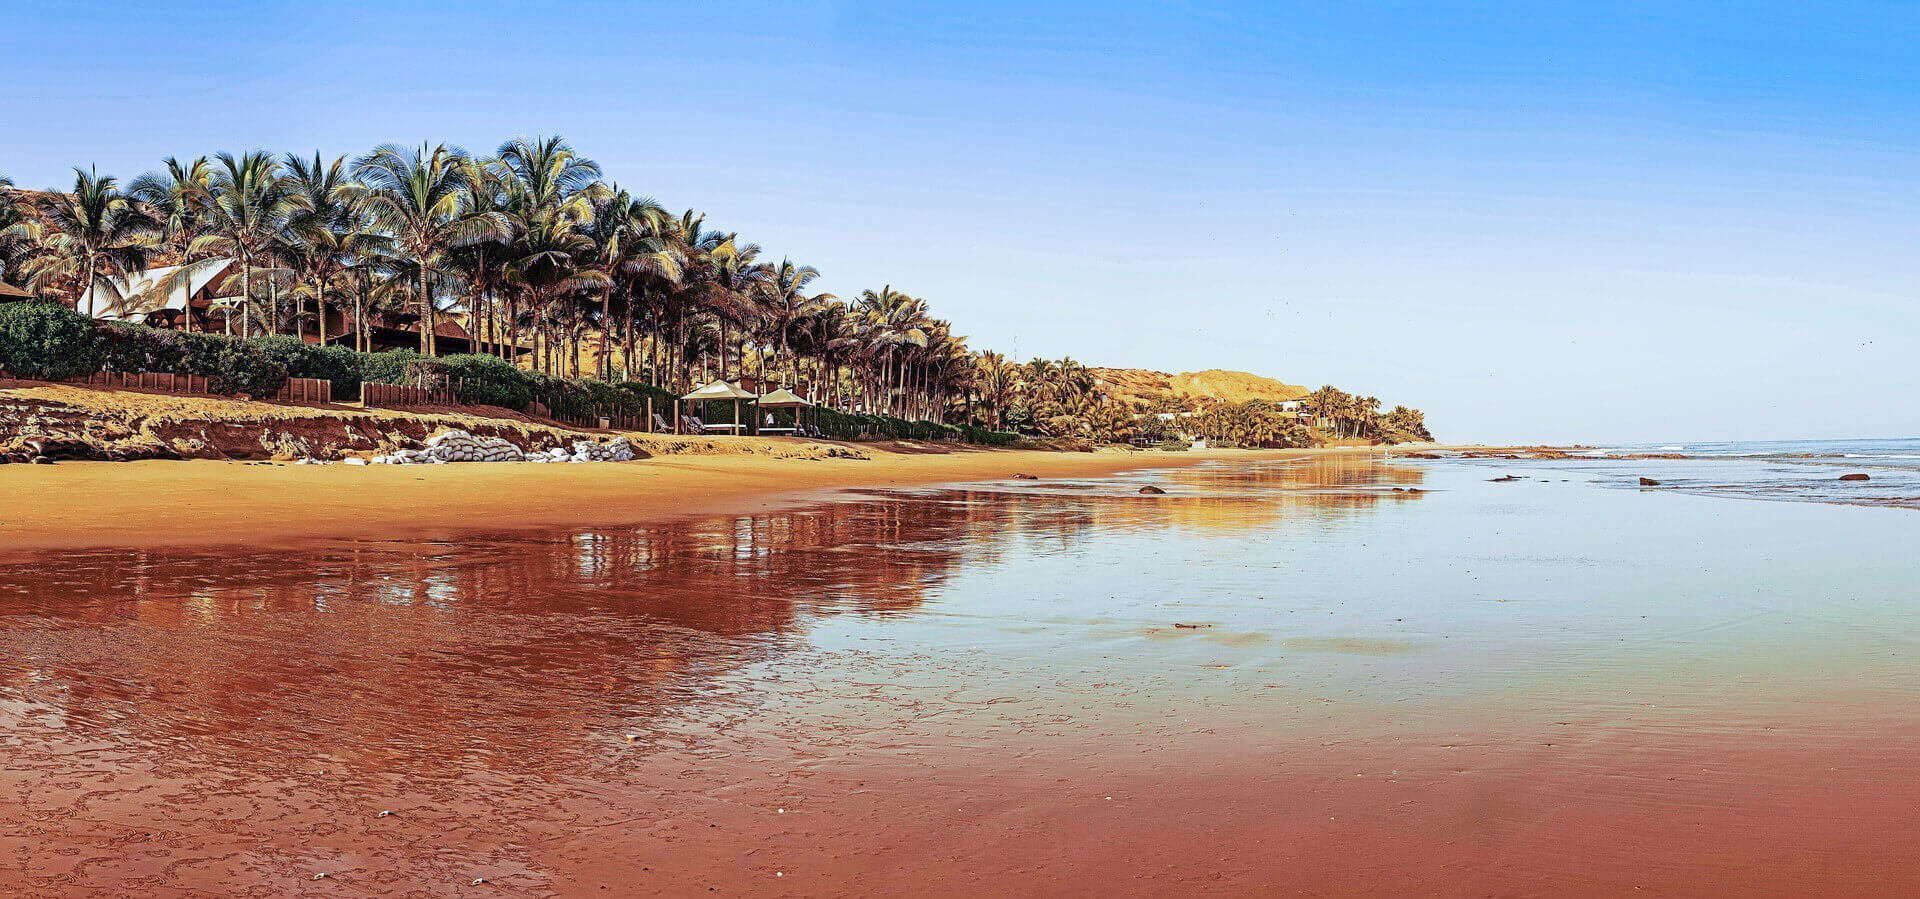 Mancora has the most beautiful sandy beach in Peru and is great for surfing